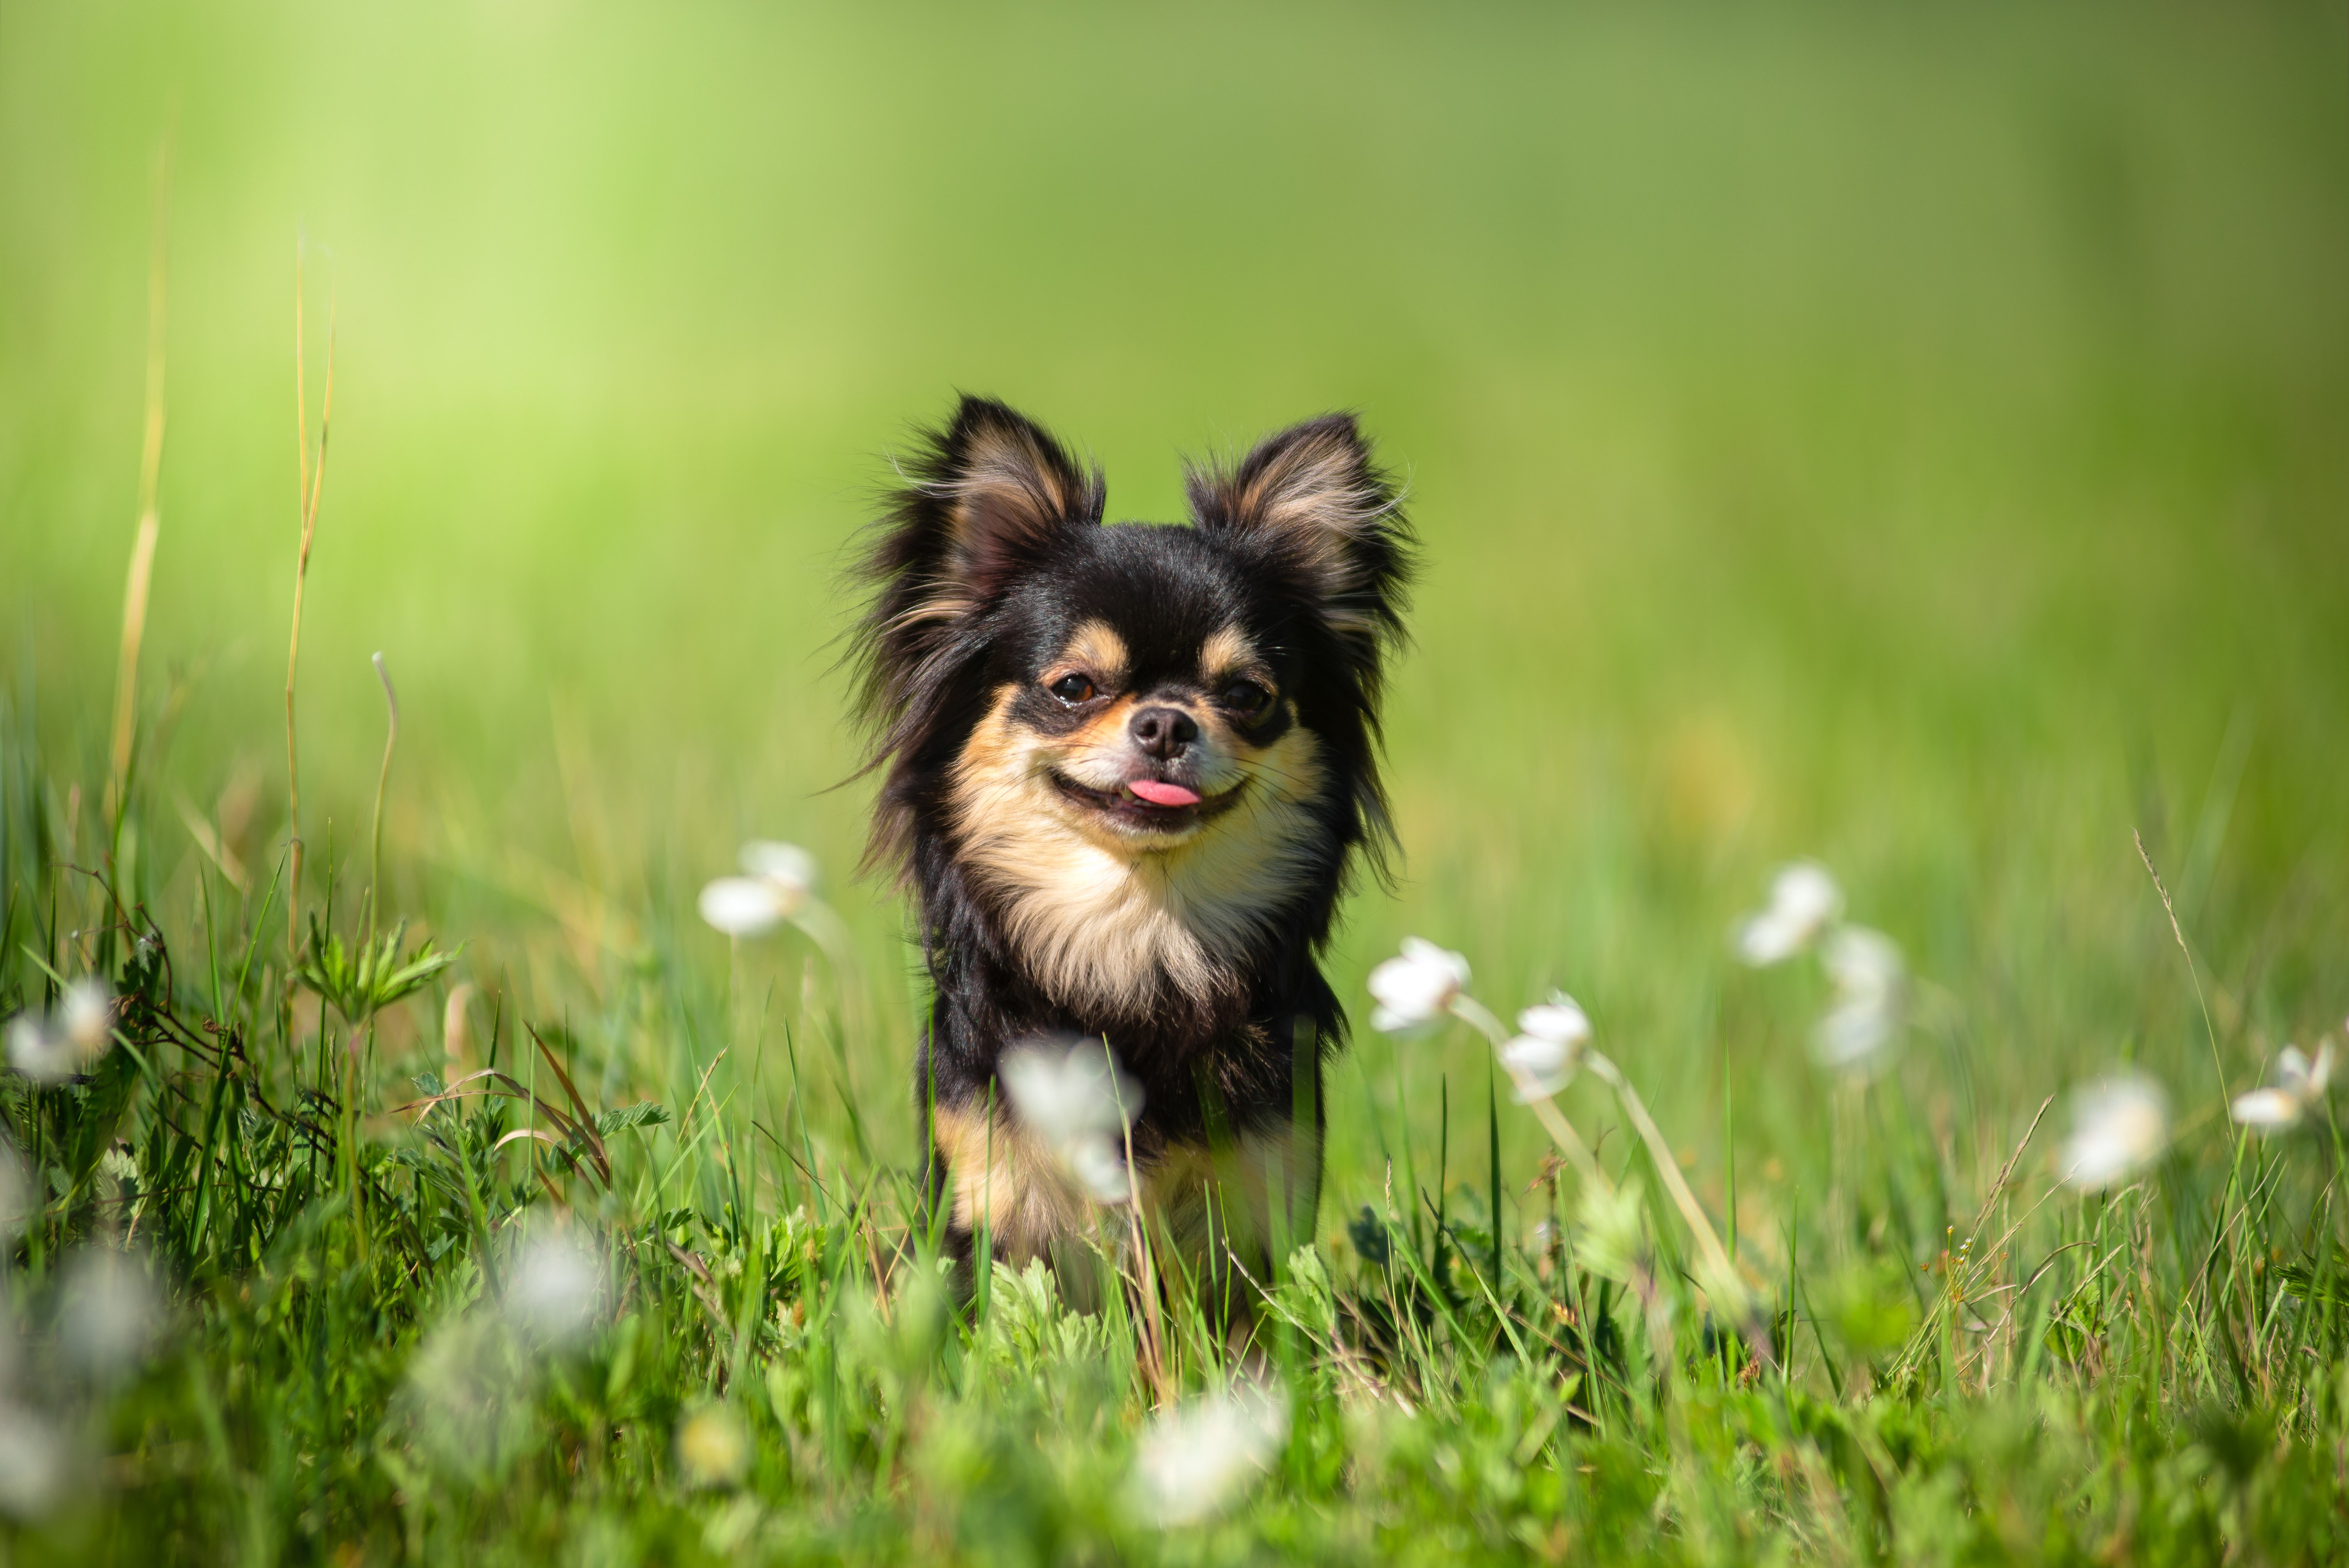 A Chihuahua dog on a sunny hot day | Photo: Shutterstock